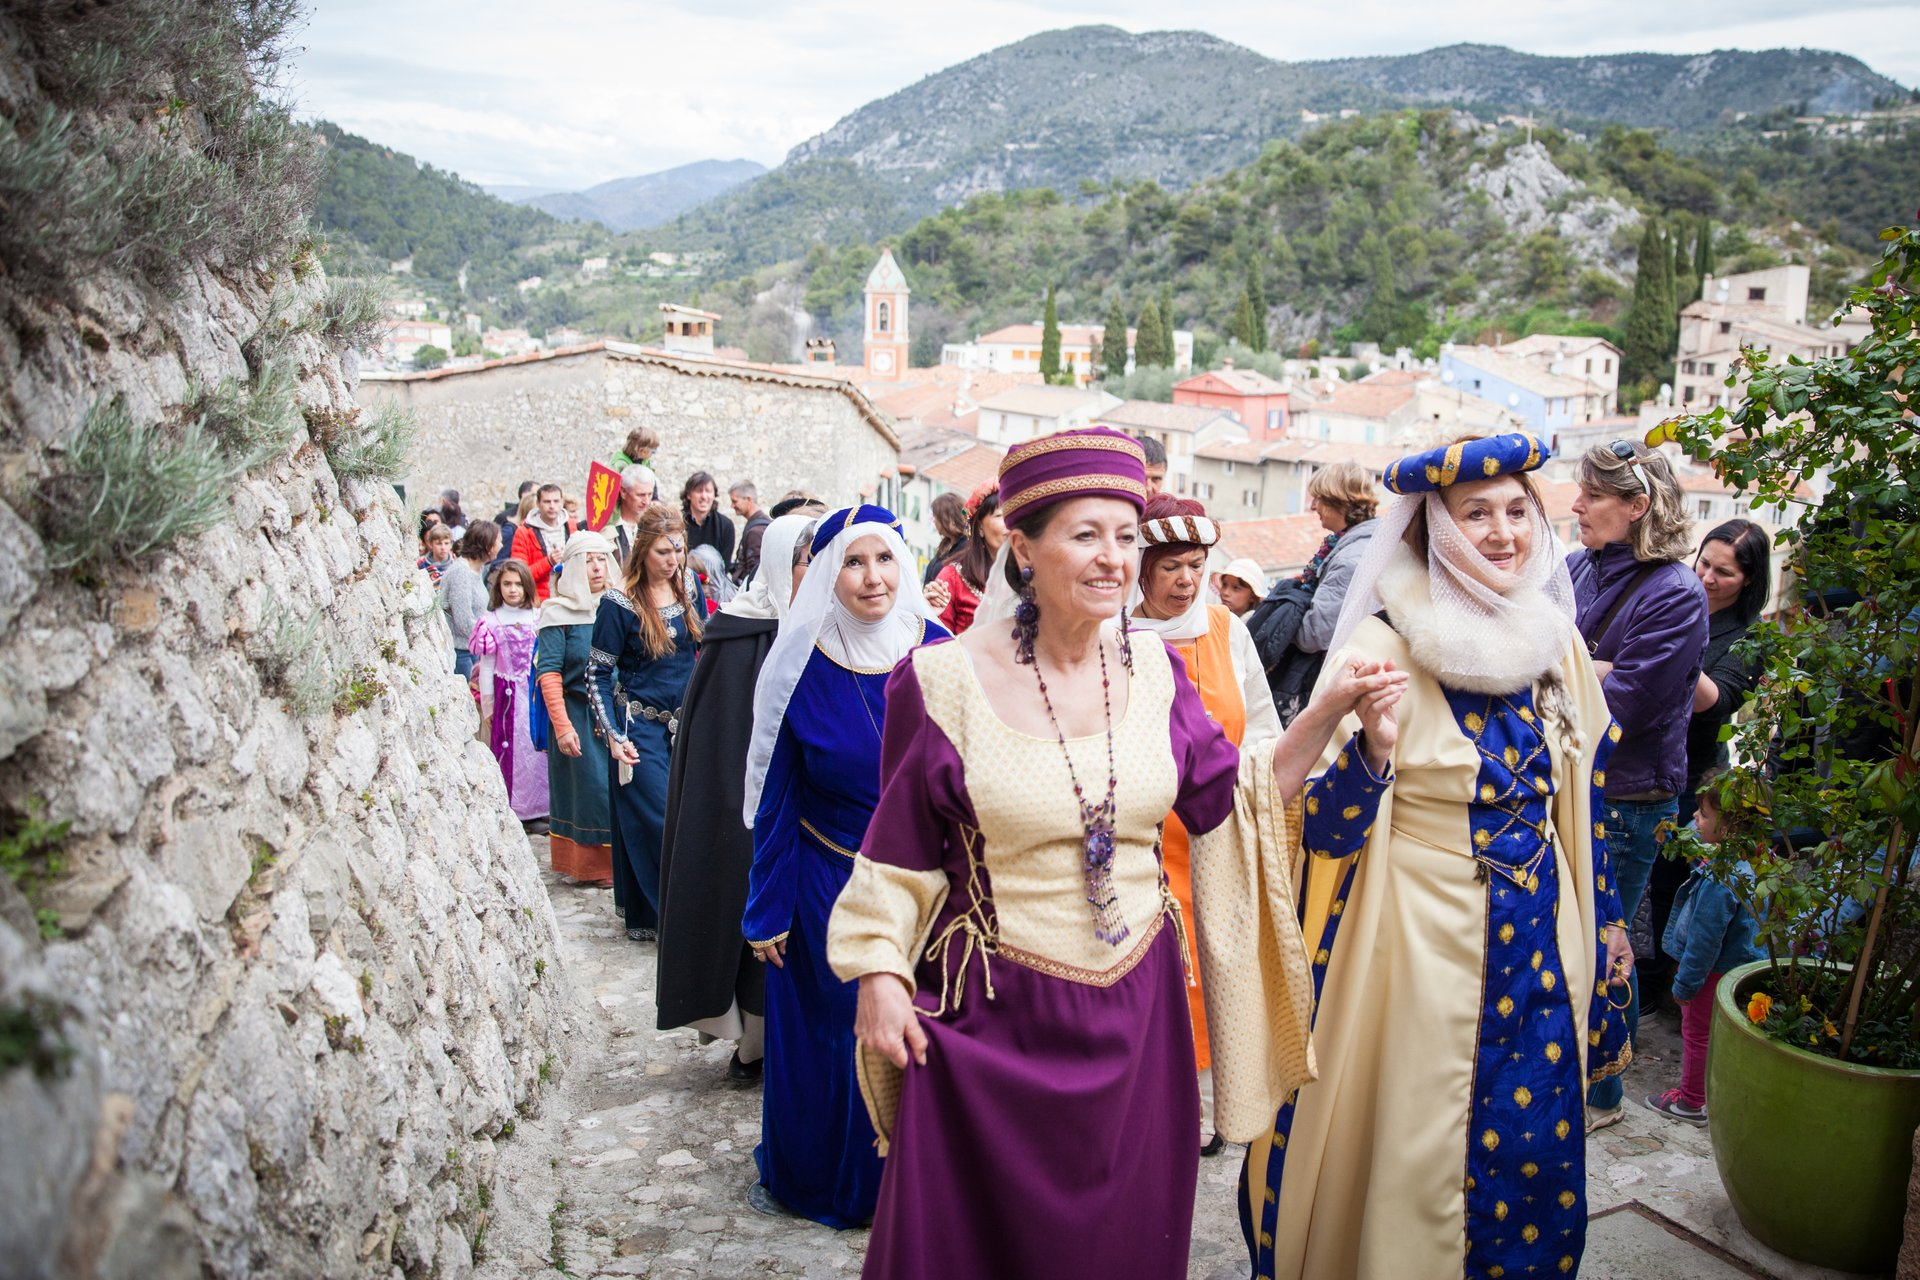 Tourrette-Levens Medieval Festival in Provence & French Riviera 2020 - Best Time